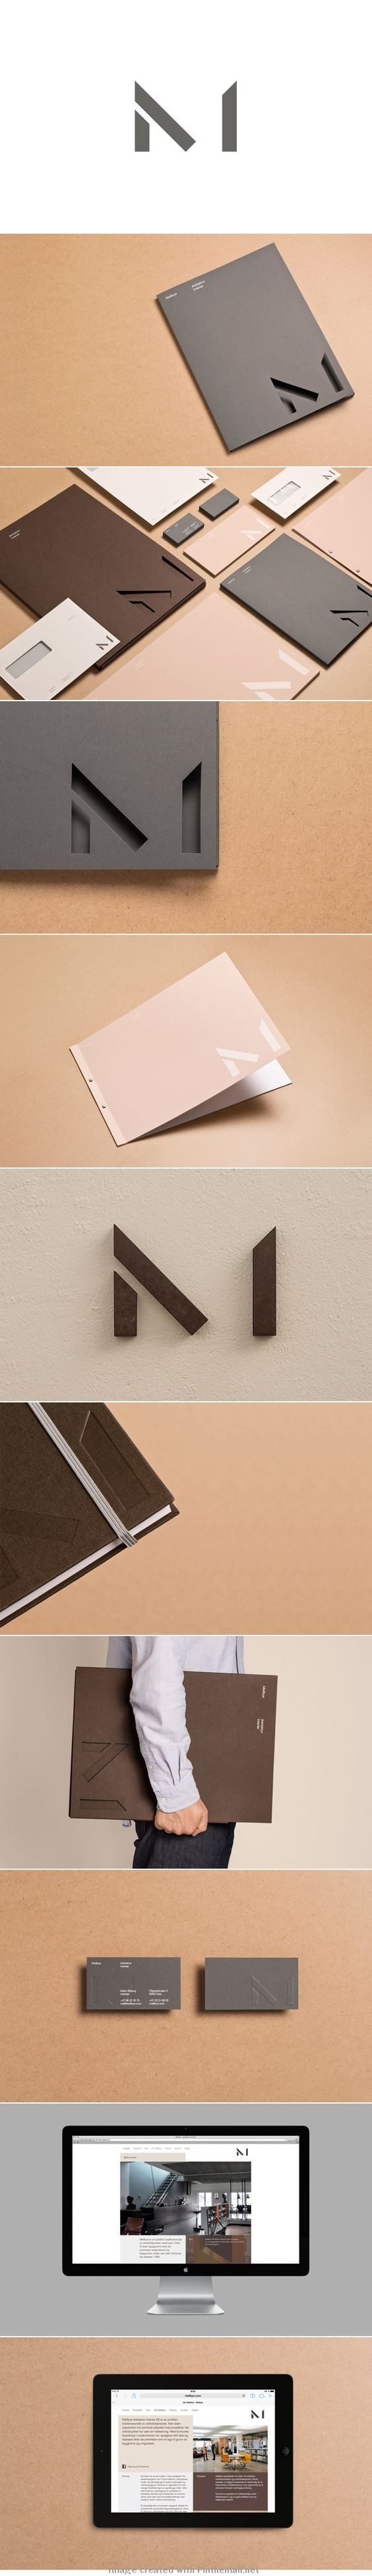 """love the simple unfinished shape here that your brain completes to see the letter """"M""""."""